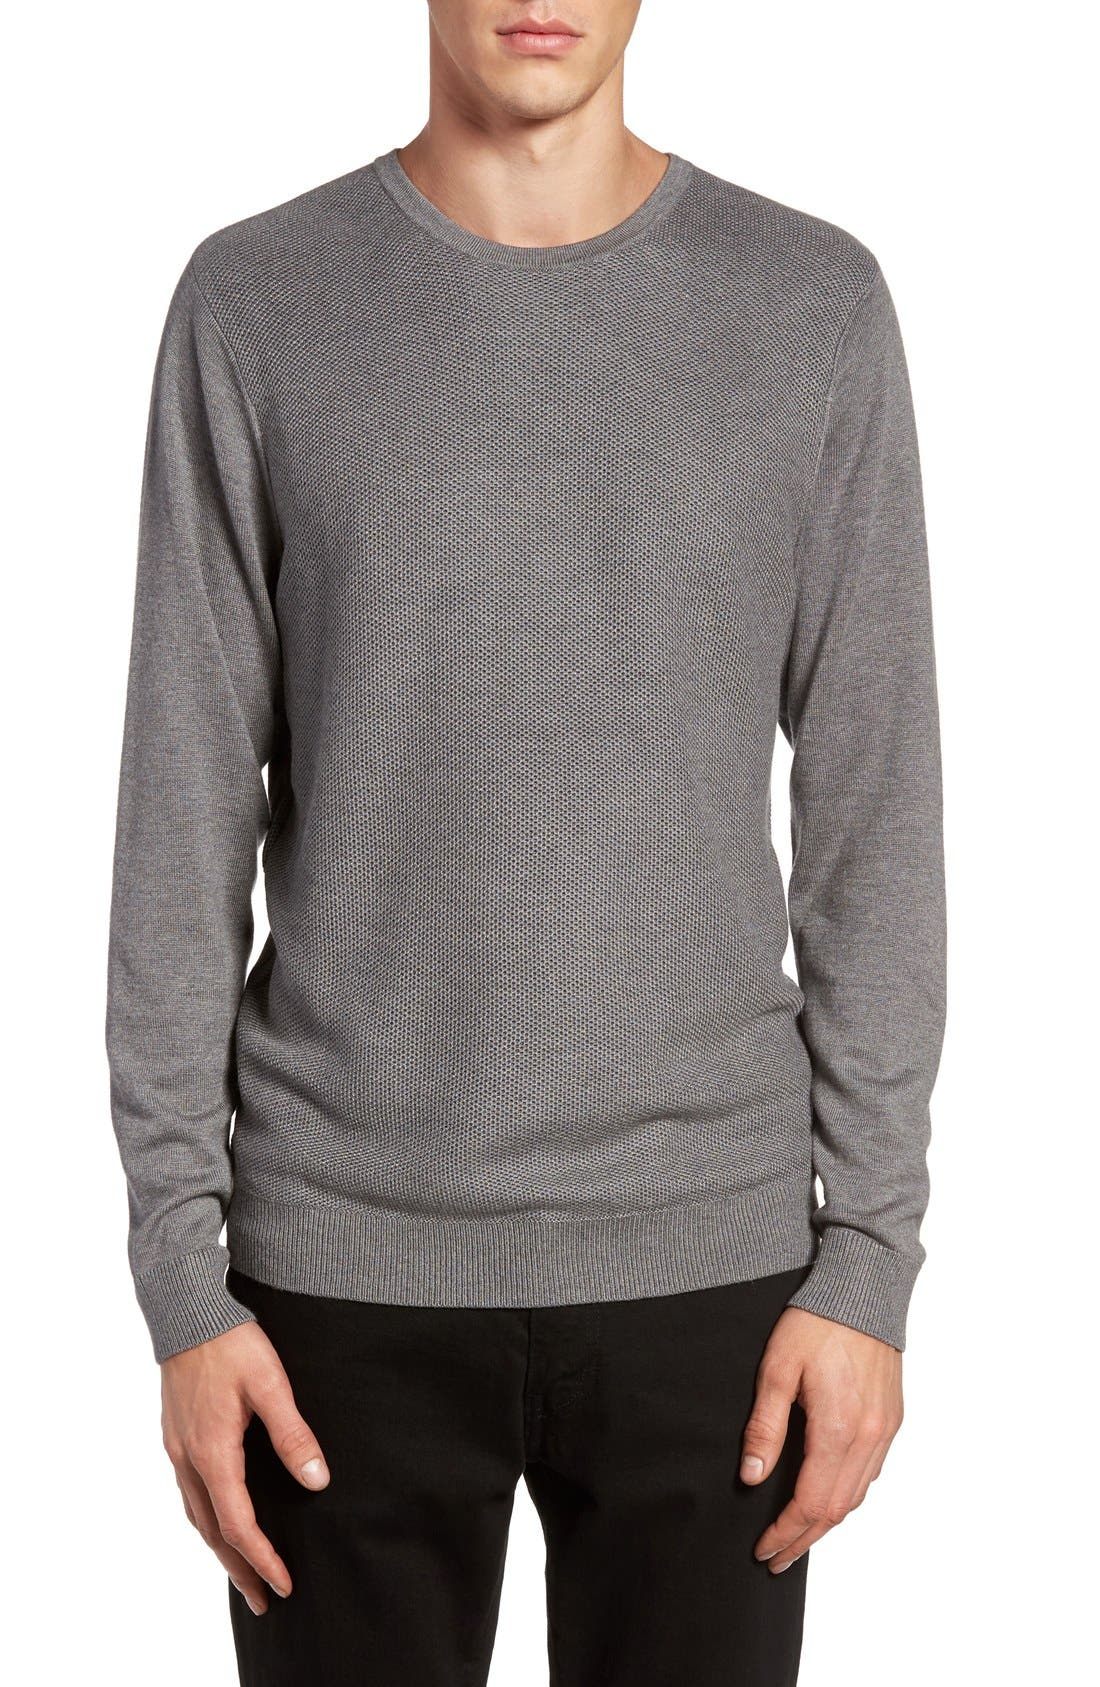 Honeycomb Stitch Crewneck Sweater,                         Main,                         color, Grey Cloudy Heather